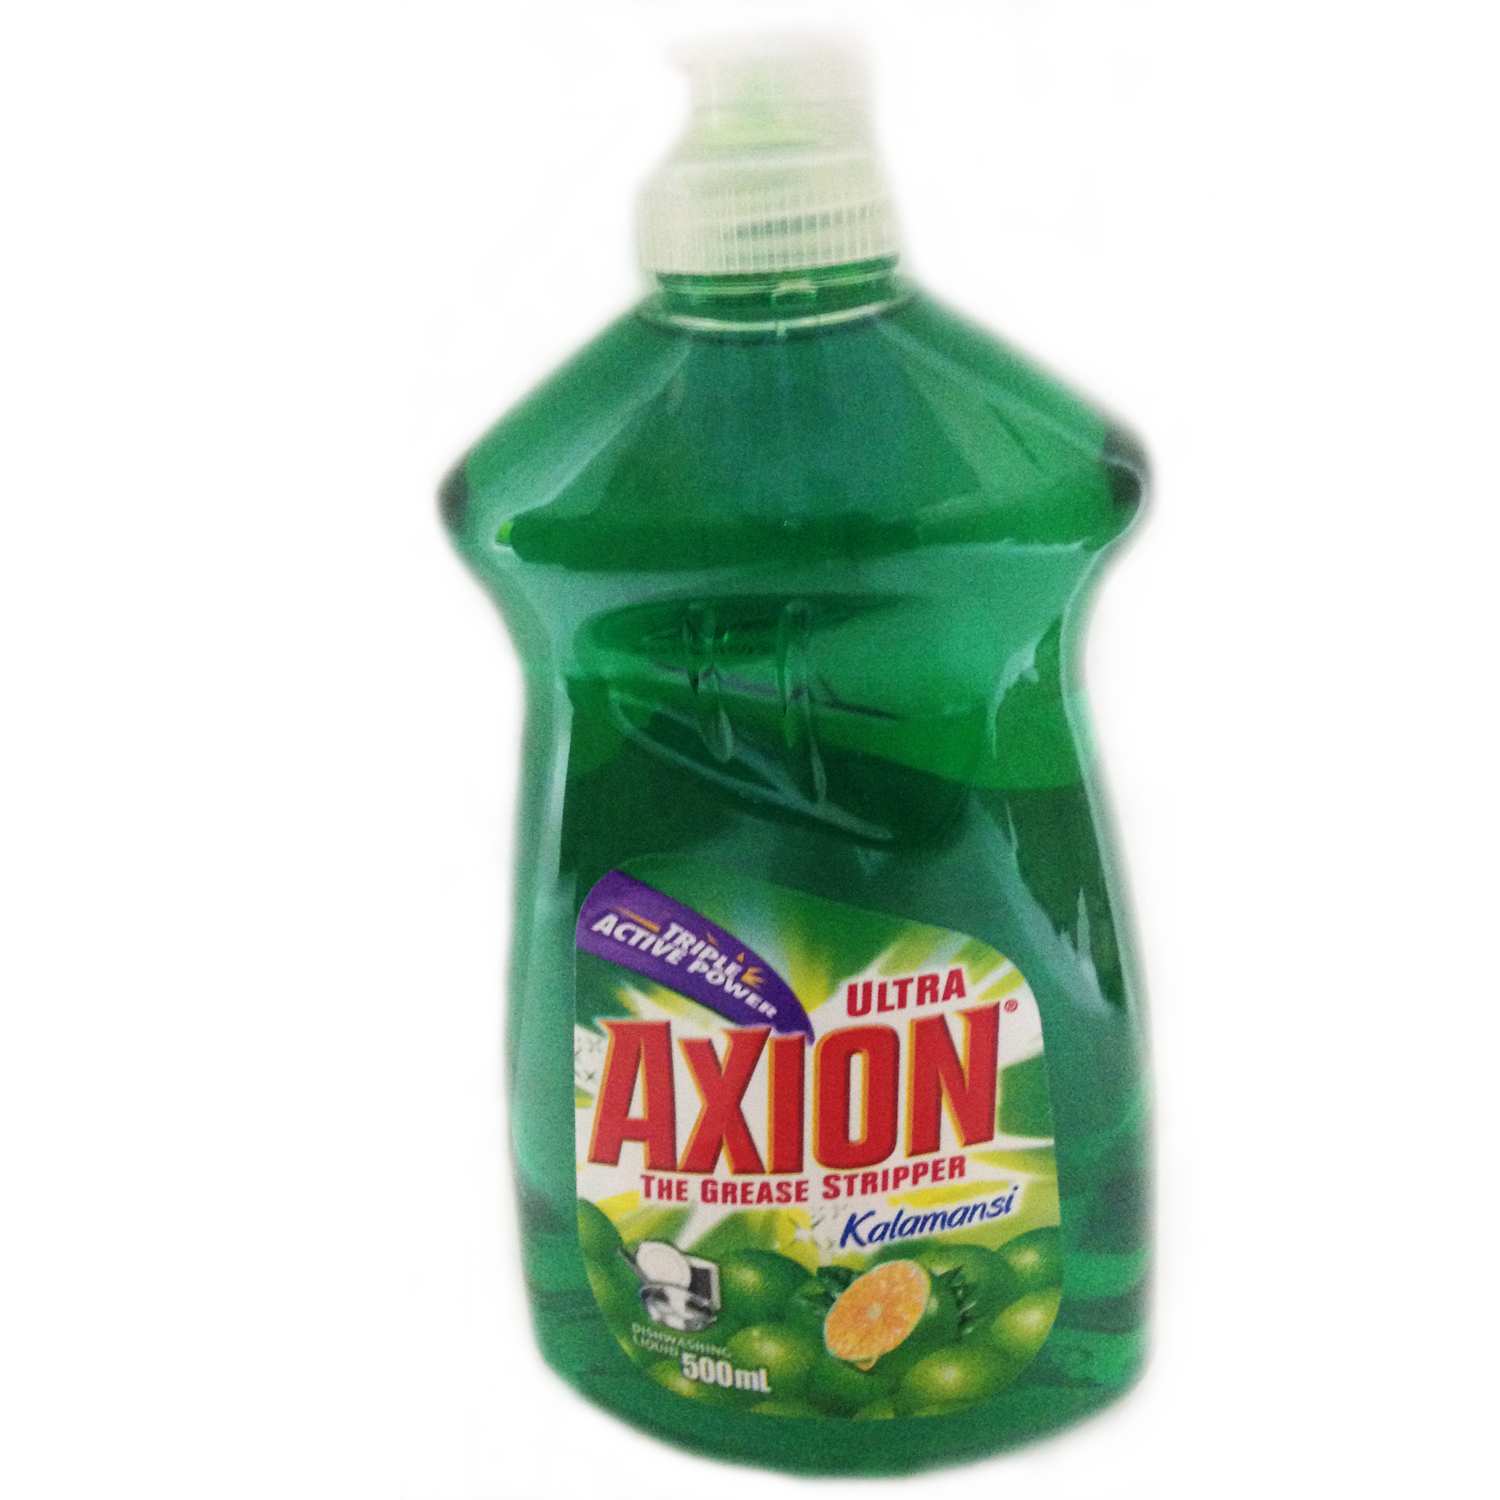 Axion Dishwashing Liquid - Lime